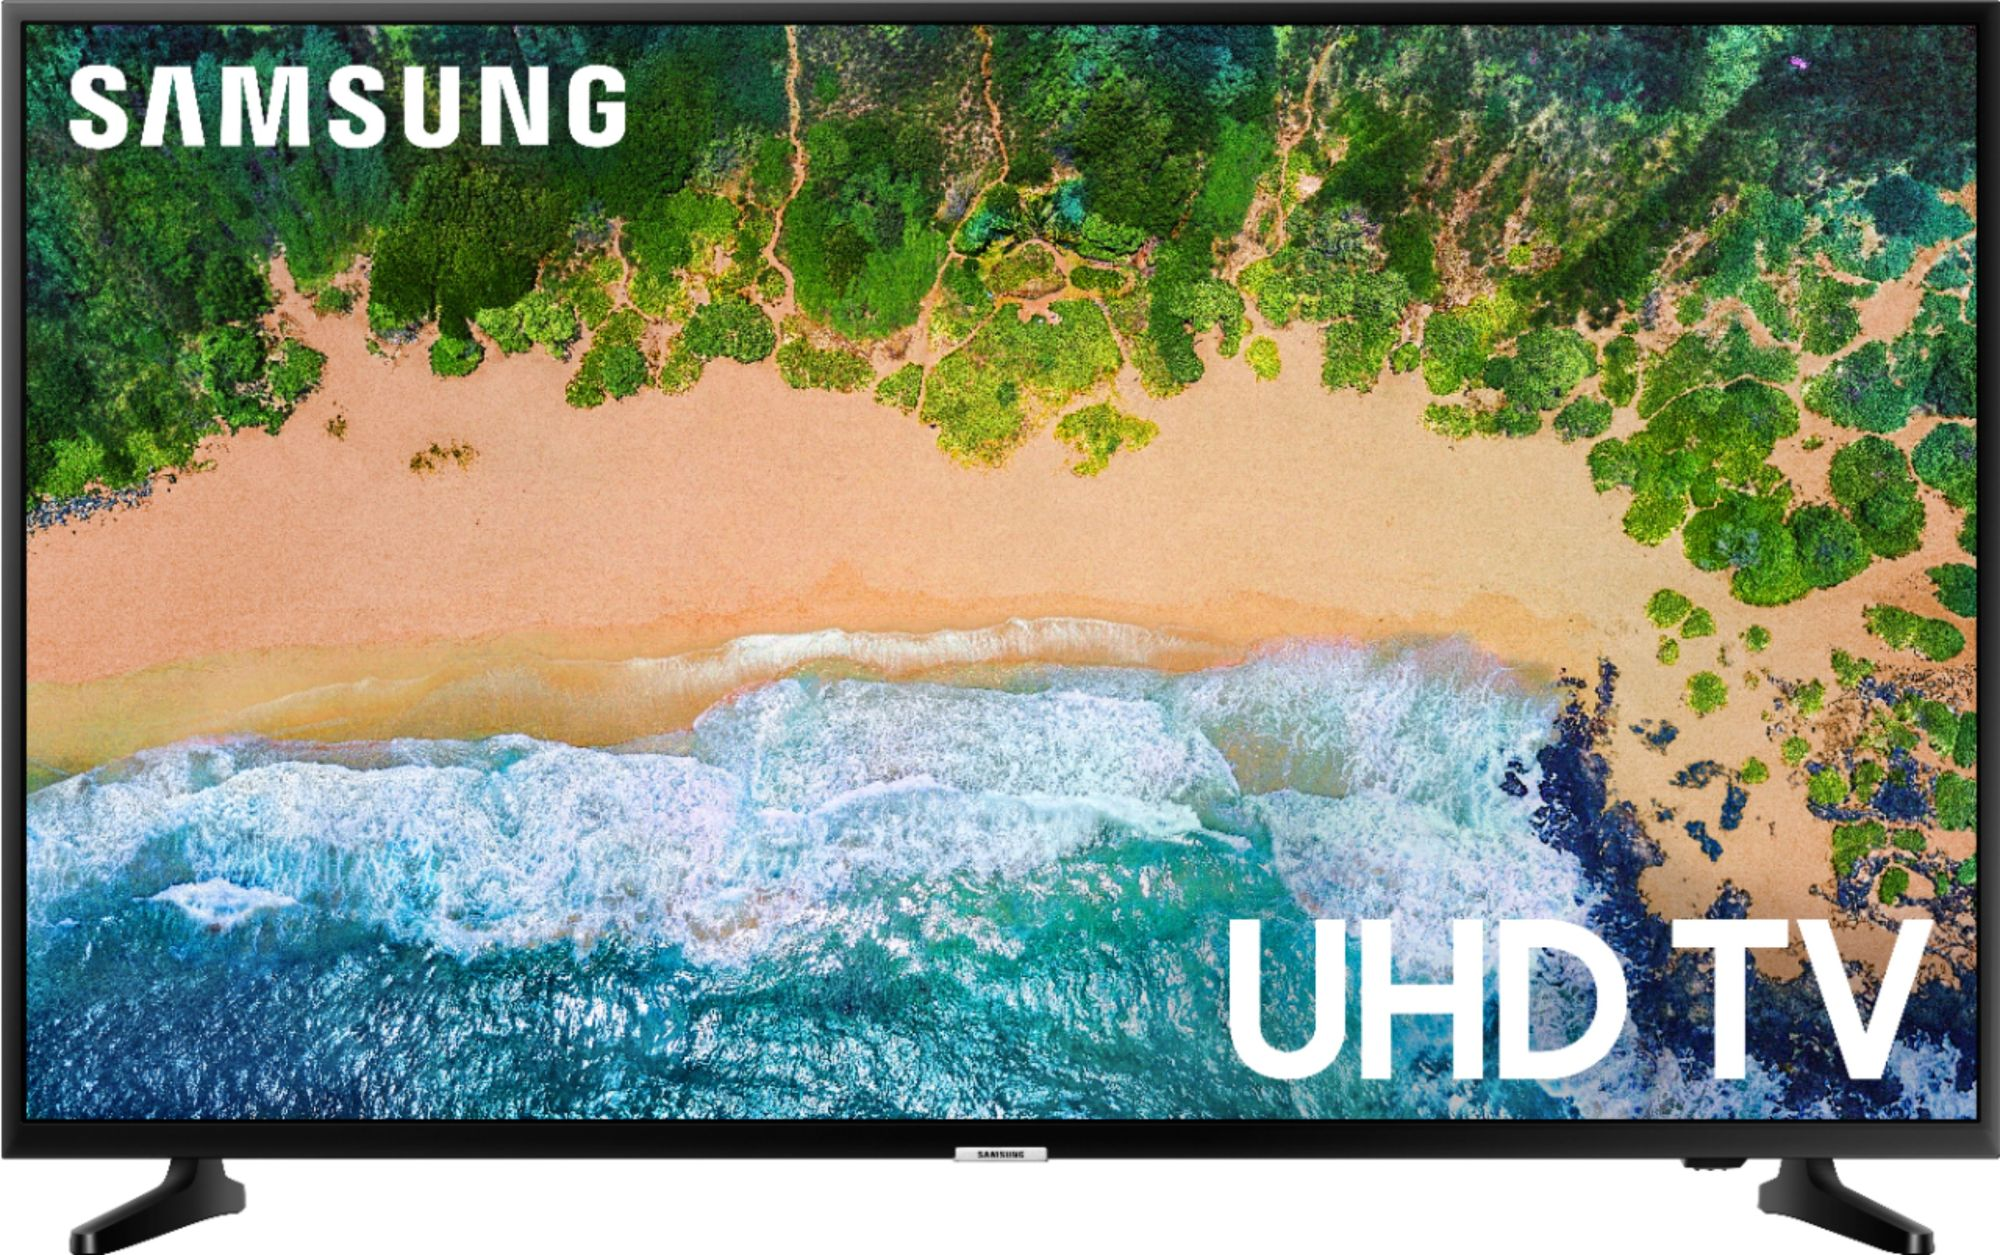 hight resolution of samsung 55 class led nu6900 series 2160p smart 4k uhd tv with hdr un55nu6900bxza best buy